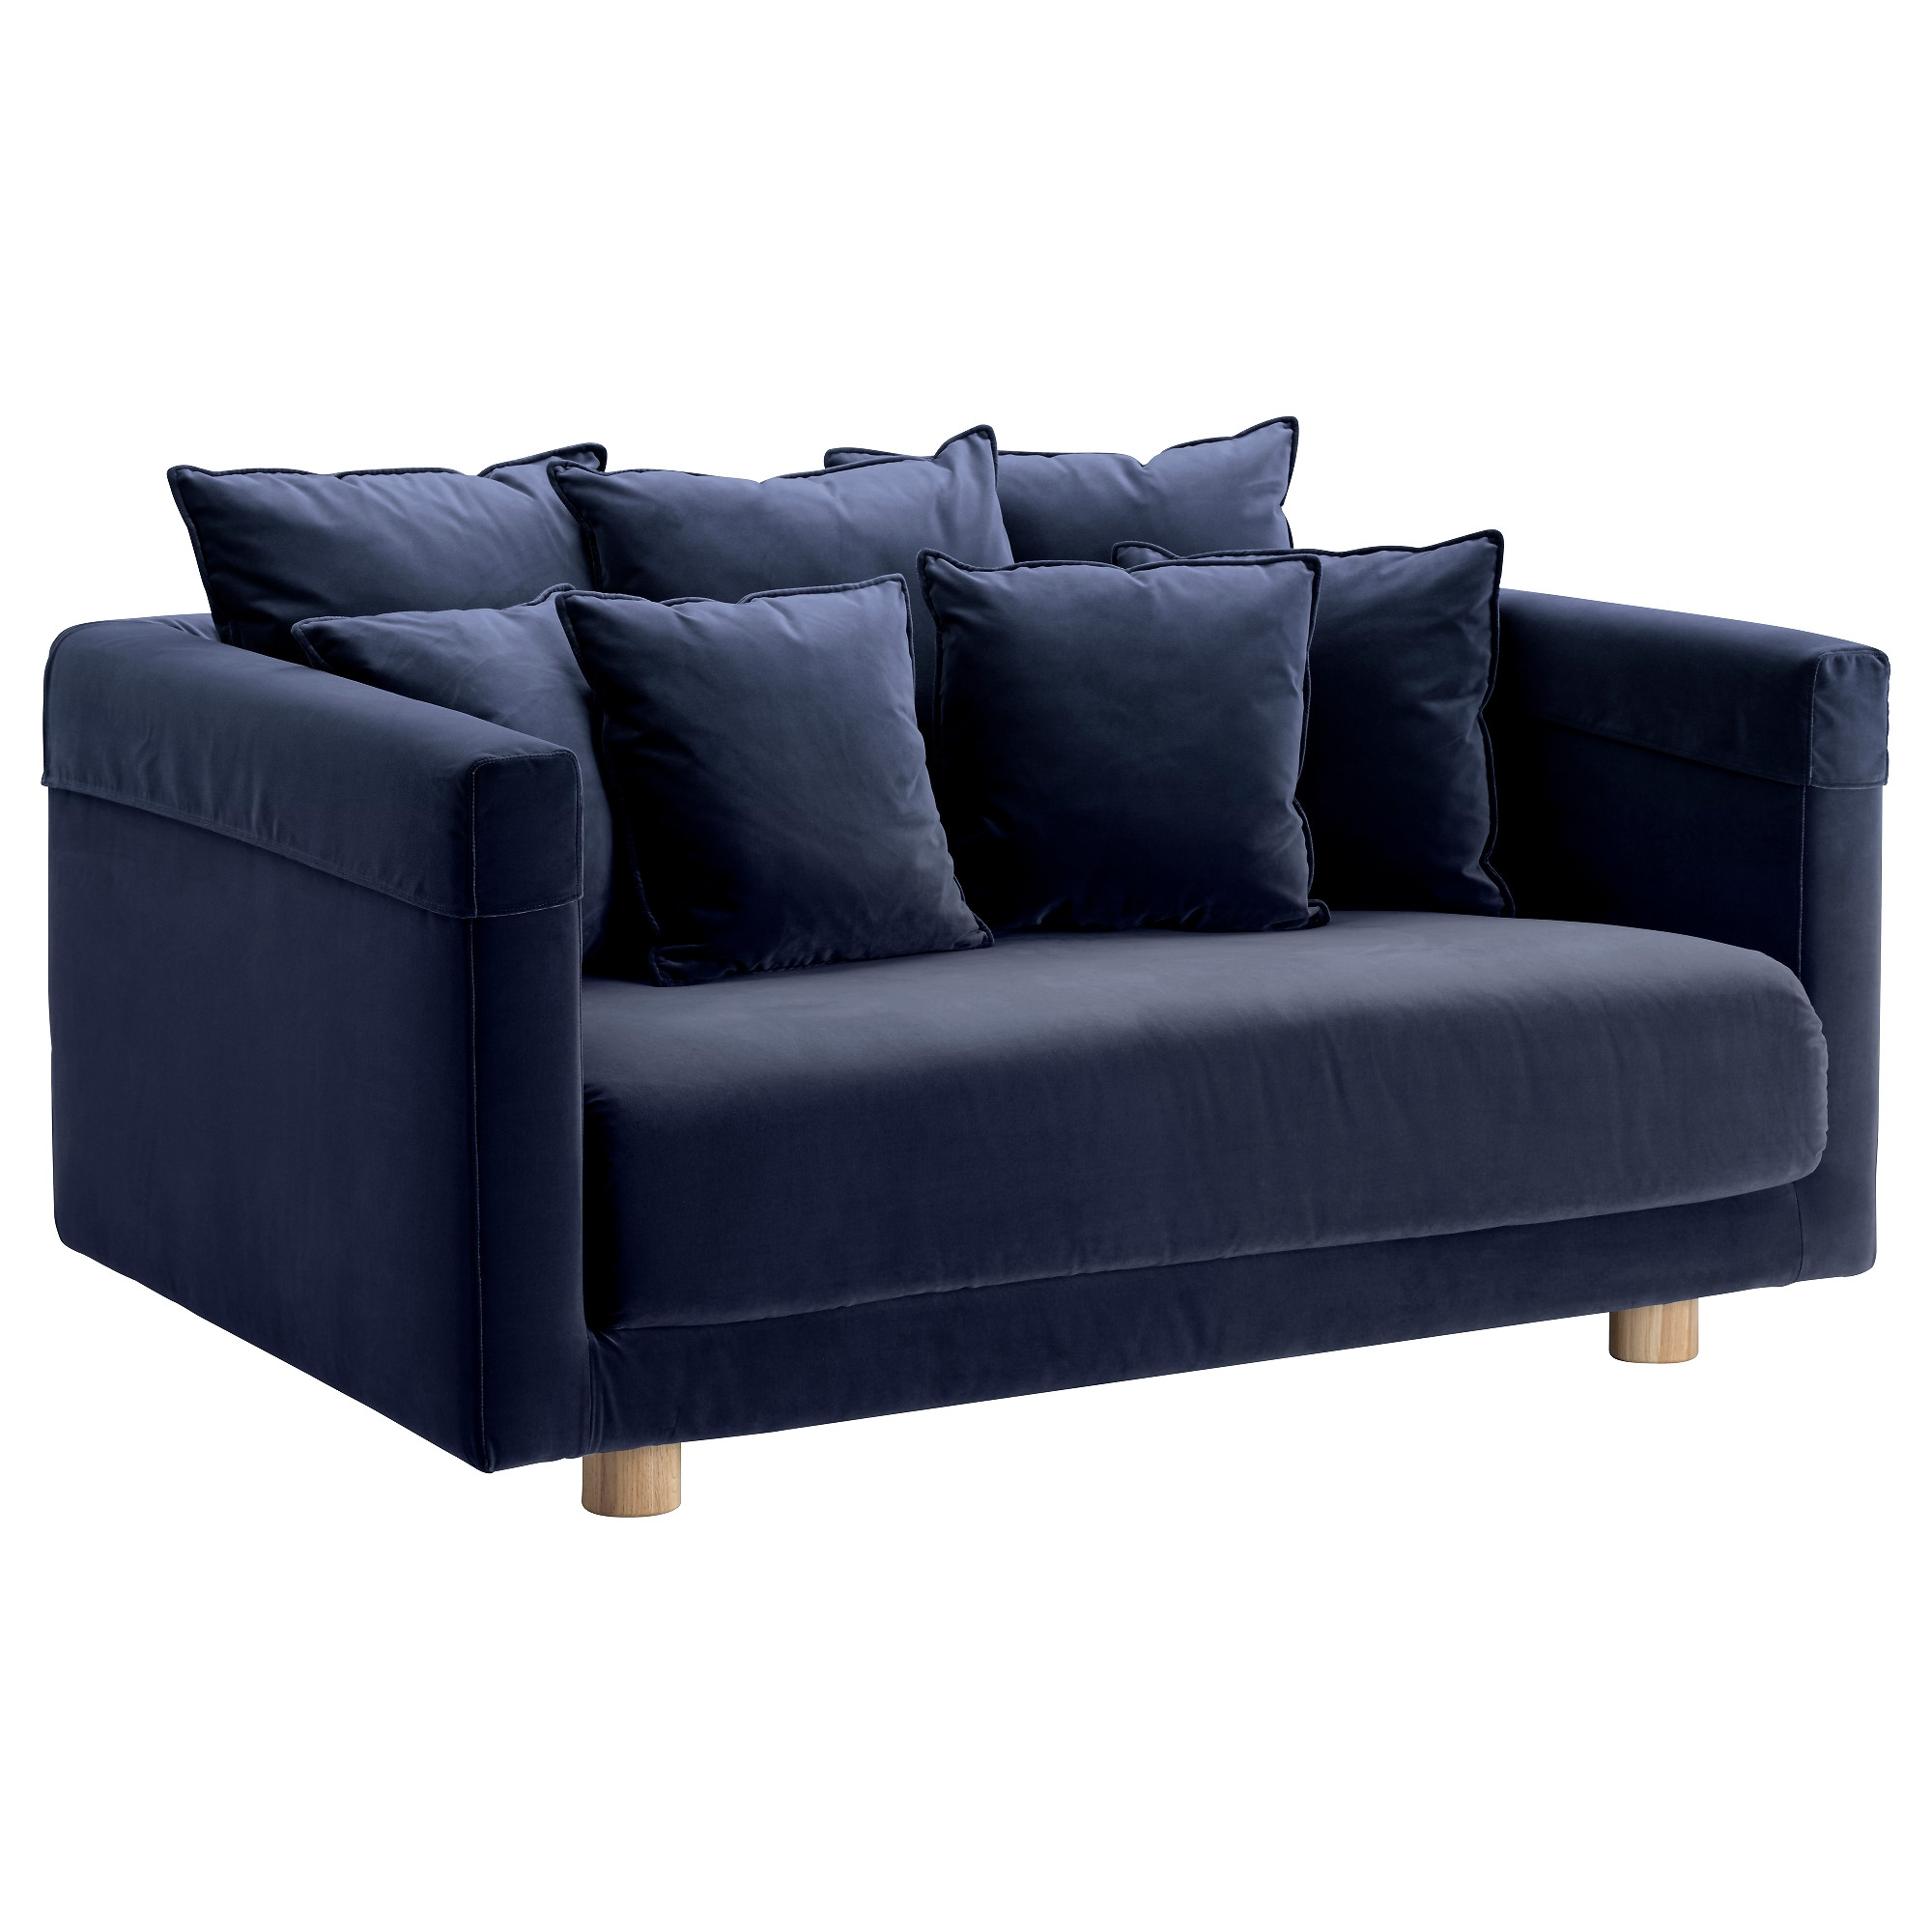 Newest Two Seater Sofas Intended For Stockholm 2017 Two Seat Sofa Sandbacka Dark Blue – Ikea (View 11 of 20)